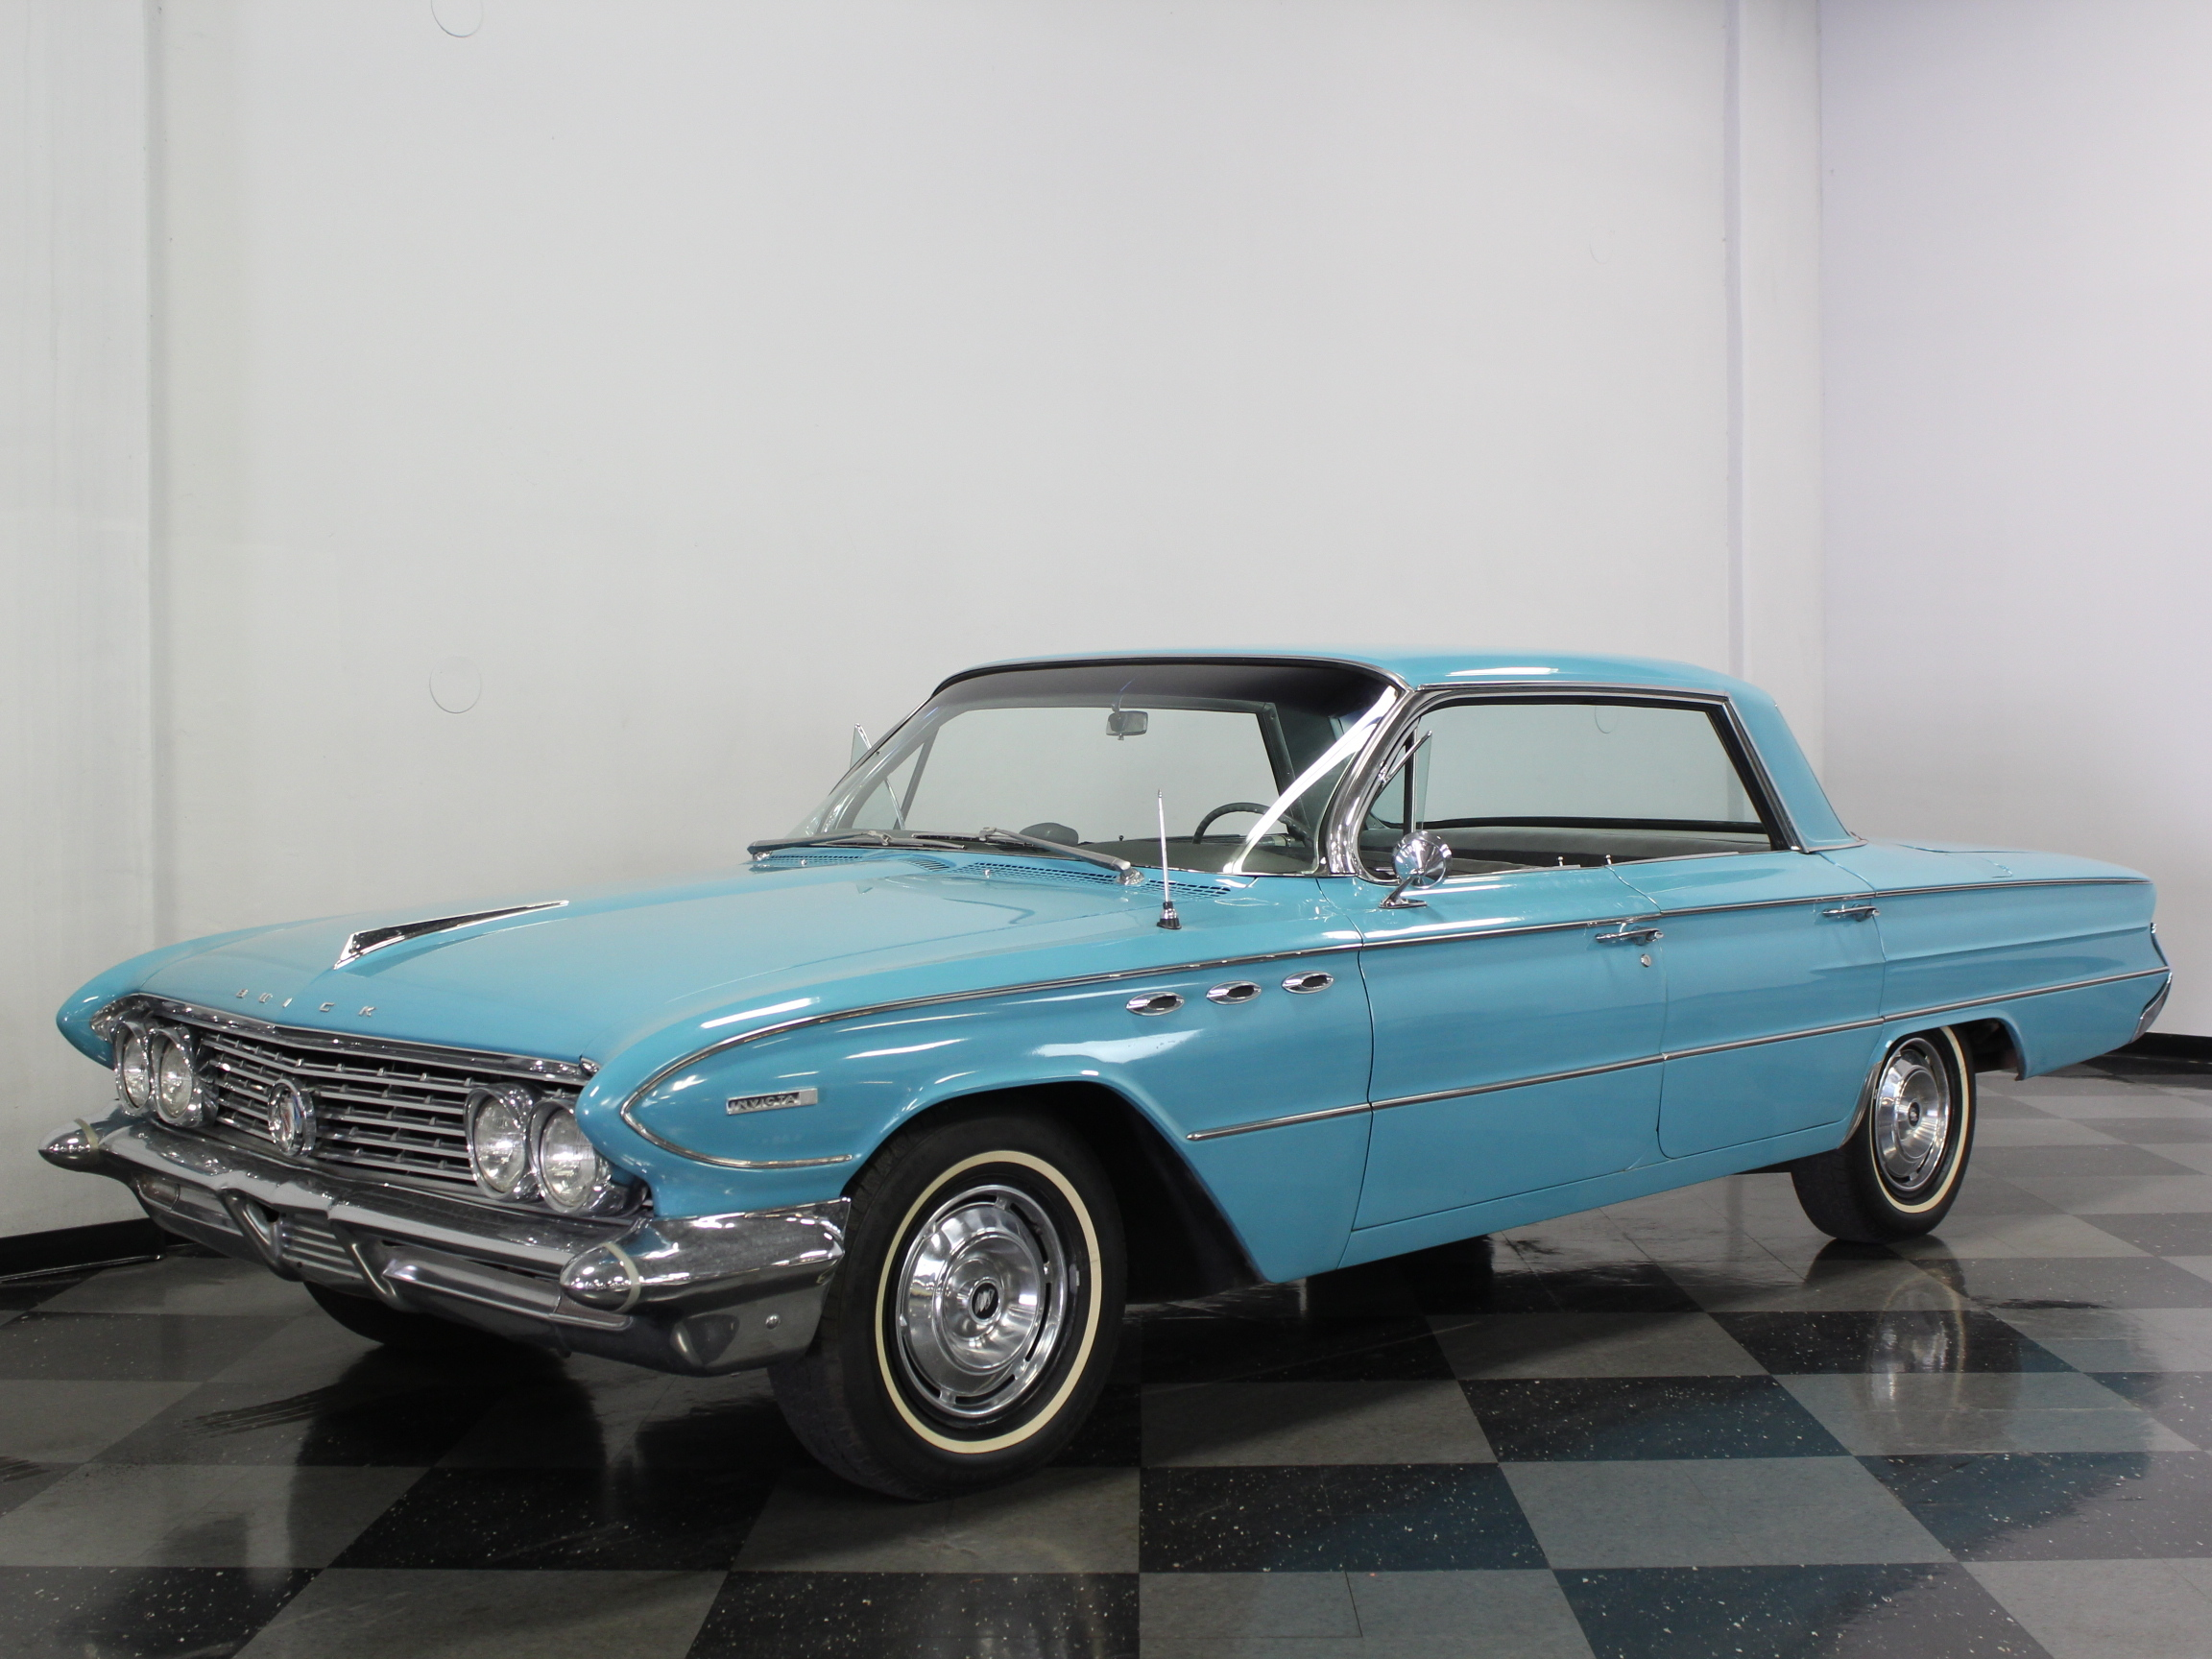 1961 Buick Invicta Streetside Classics The Nation S Trusted Classic Car Consignment Dealer